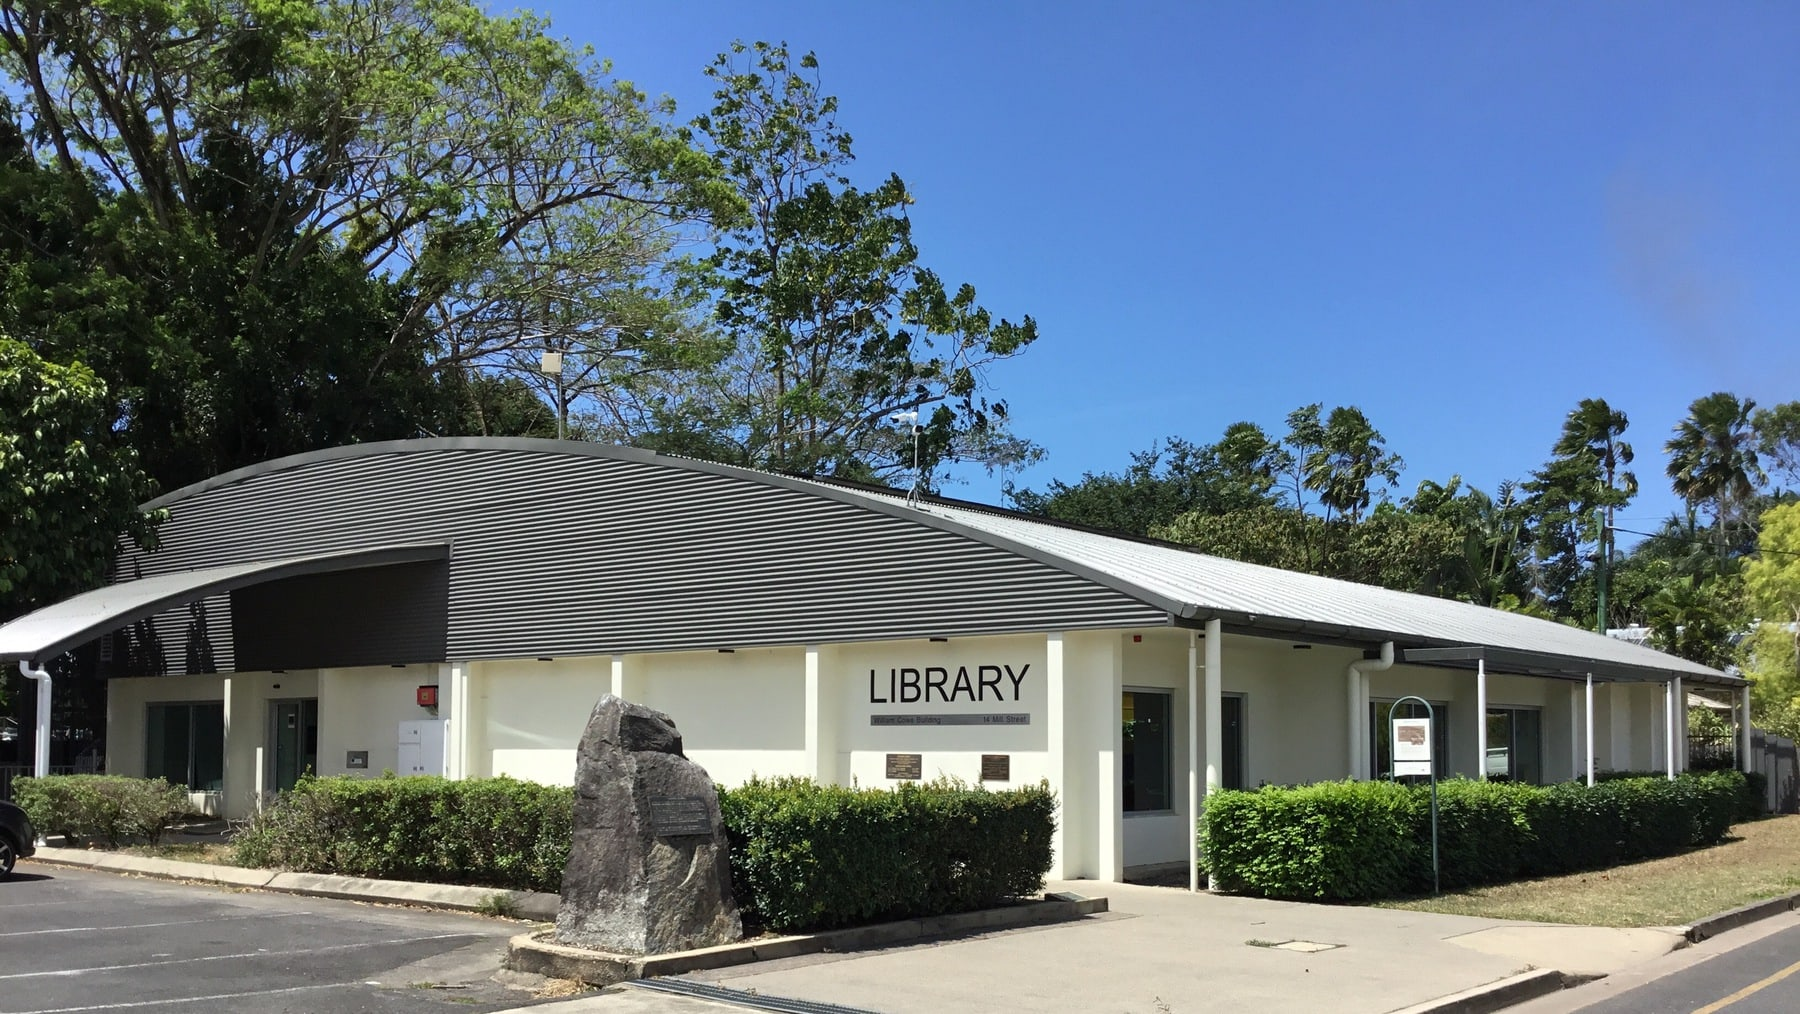 Mossman Library outside view